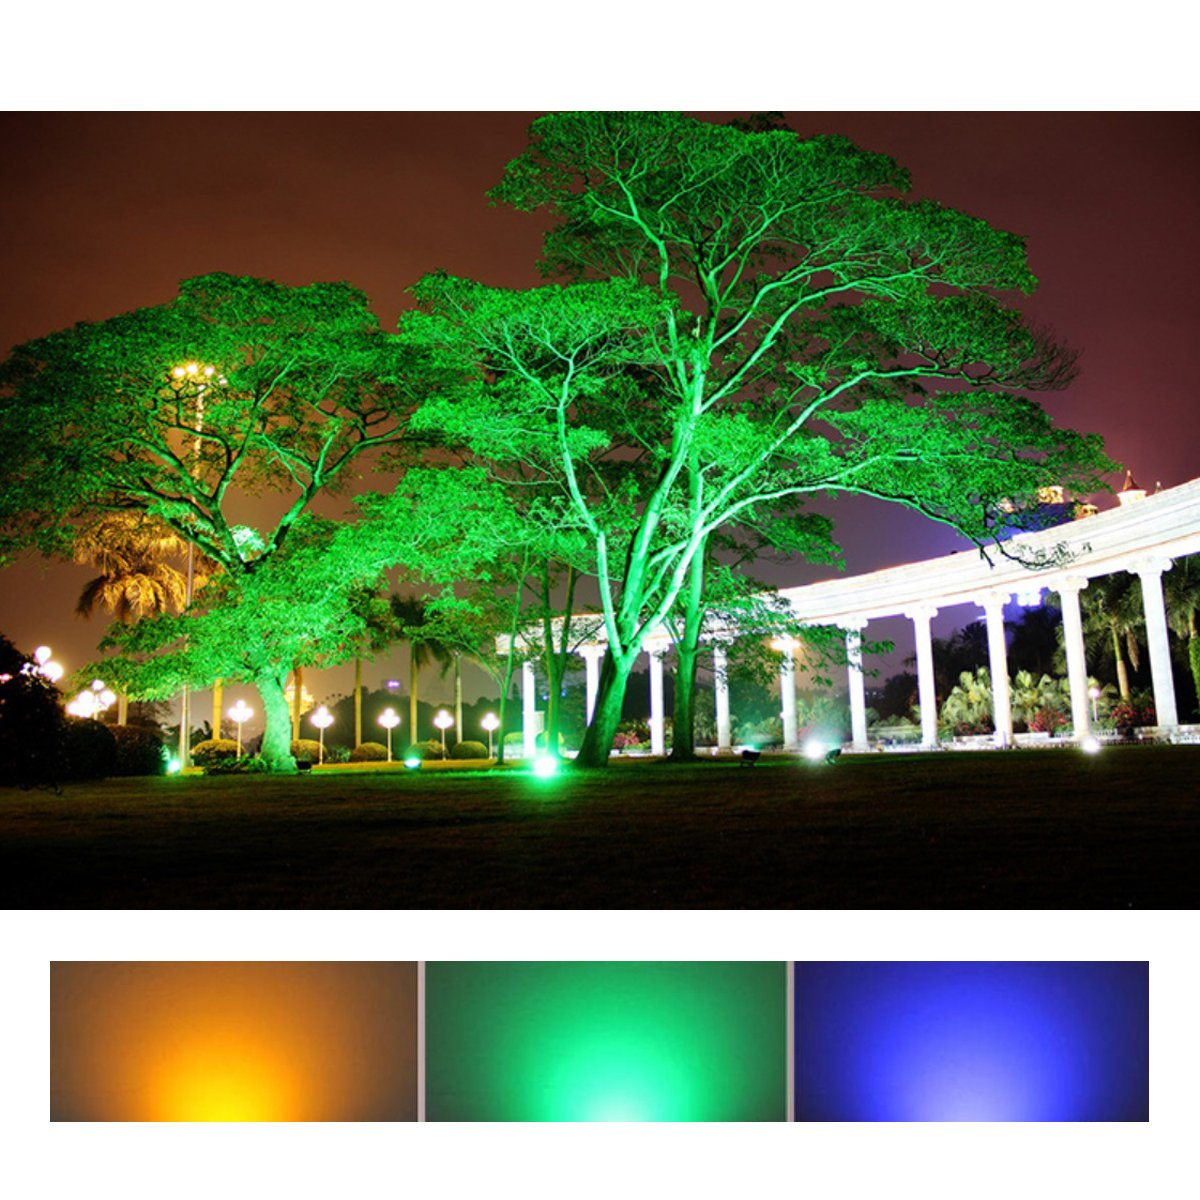 autai led flood light waterproof 30w spotlight bulb rgb multi color changing dimmable with smart bluetooth app control for courtyard garden lawn tree